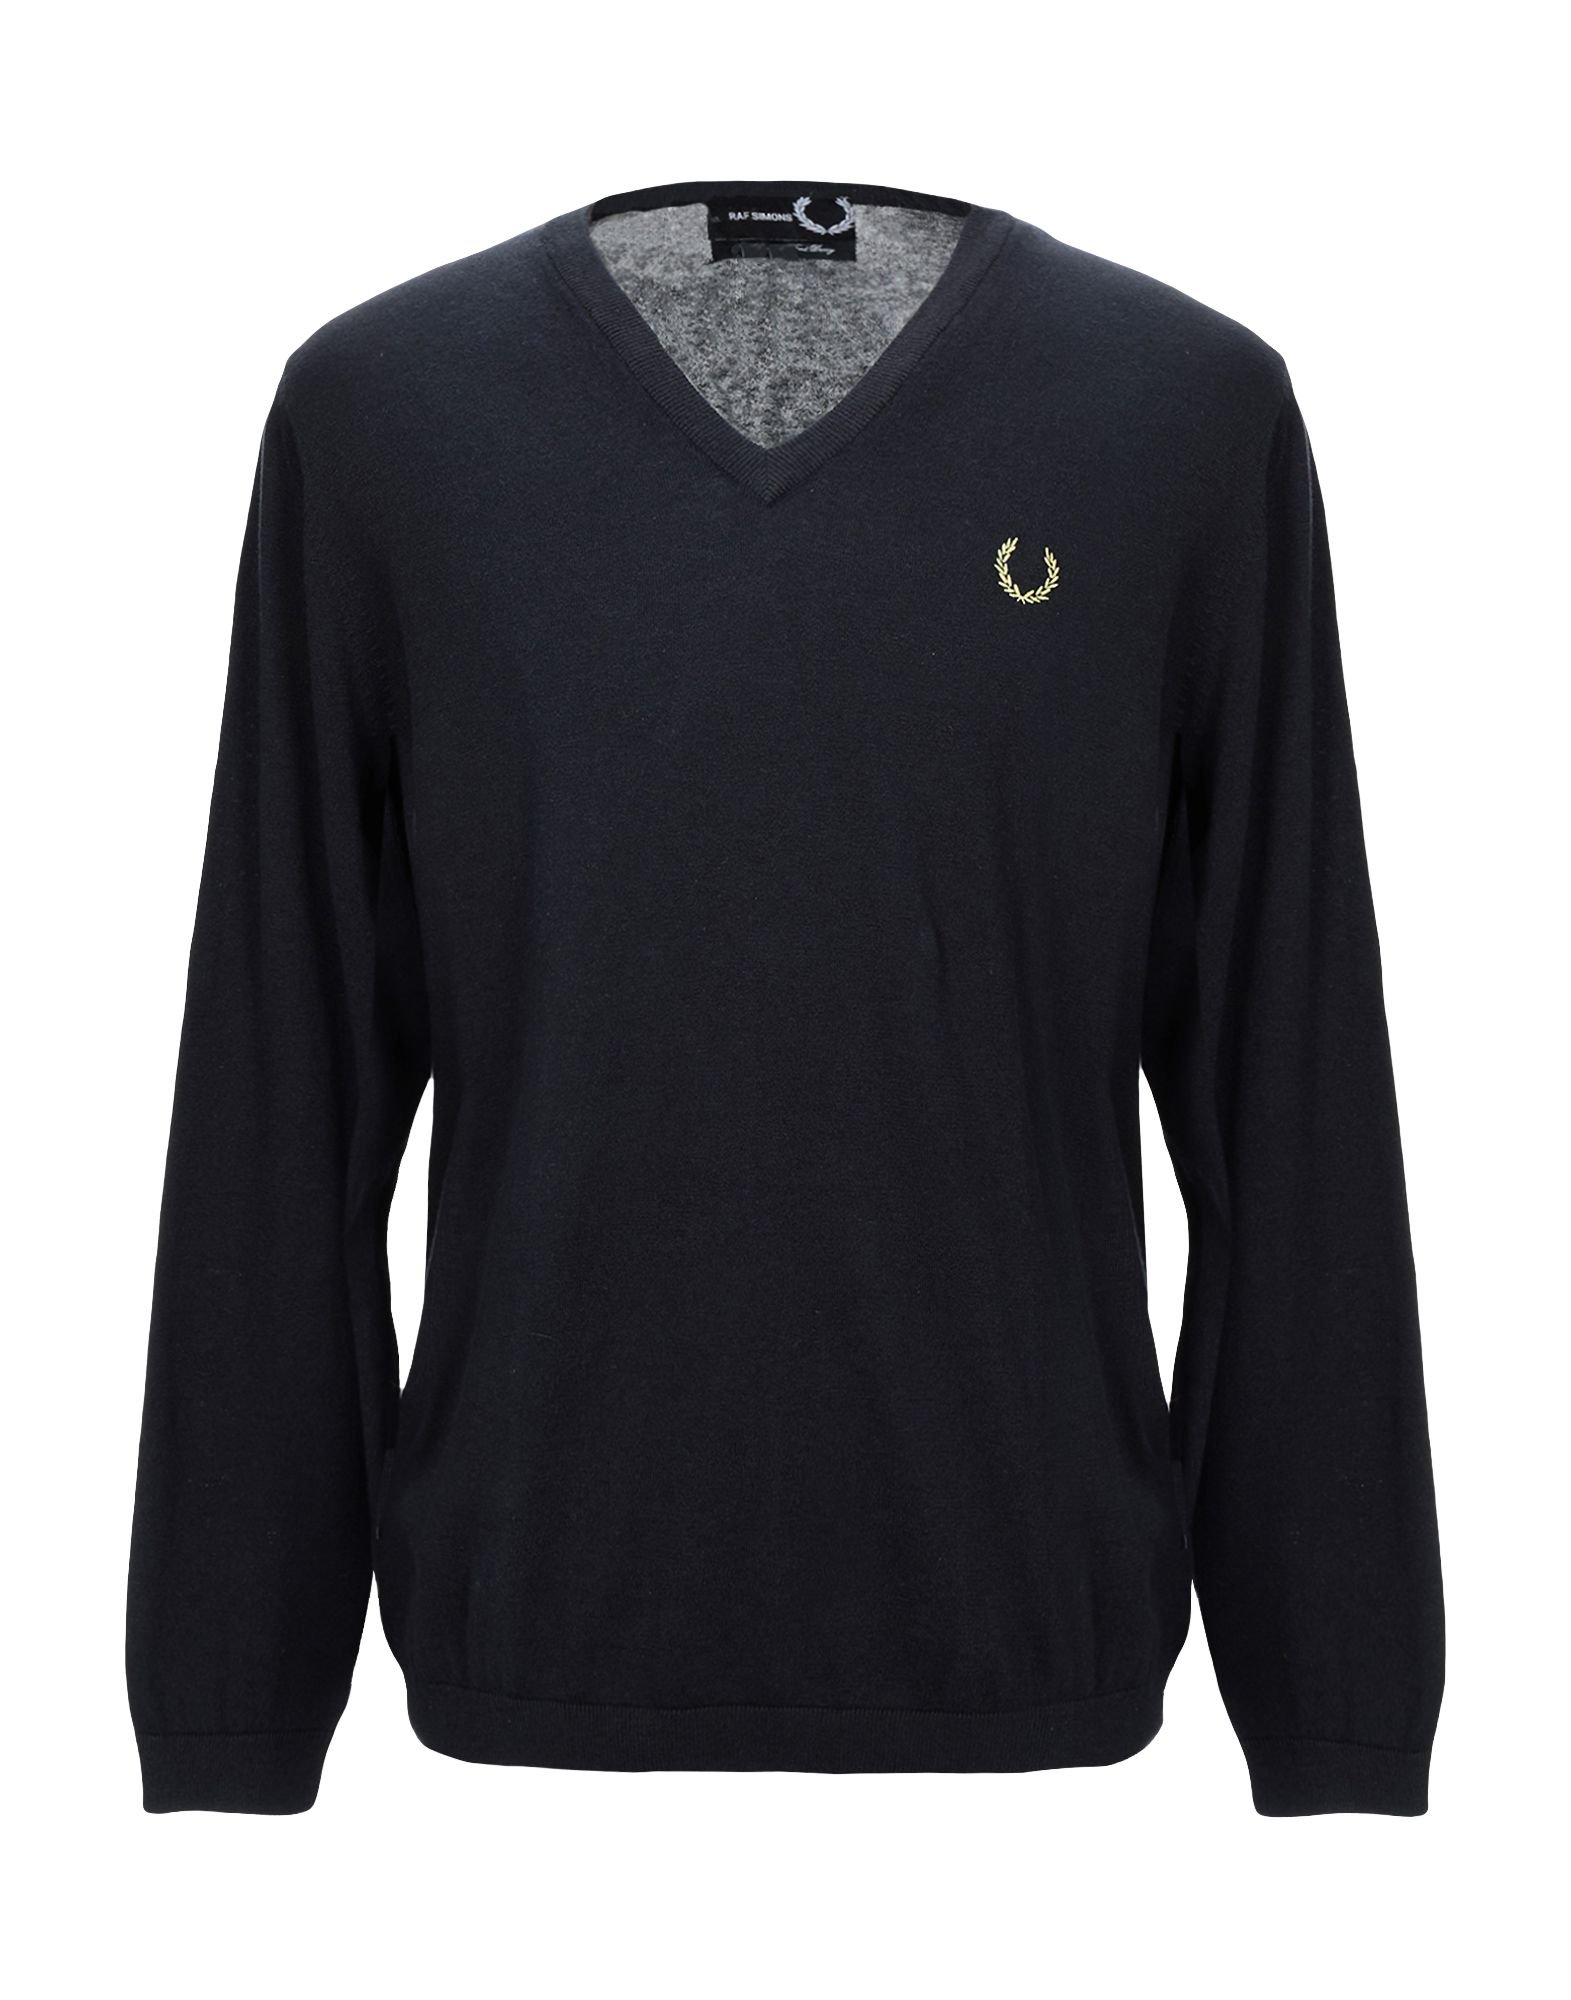 RAF SIMONS FRED PERRY Свитер raf simons fred perry поло